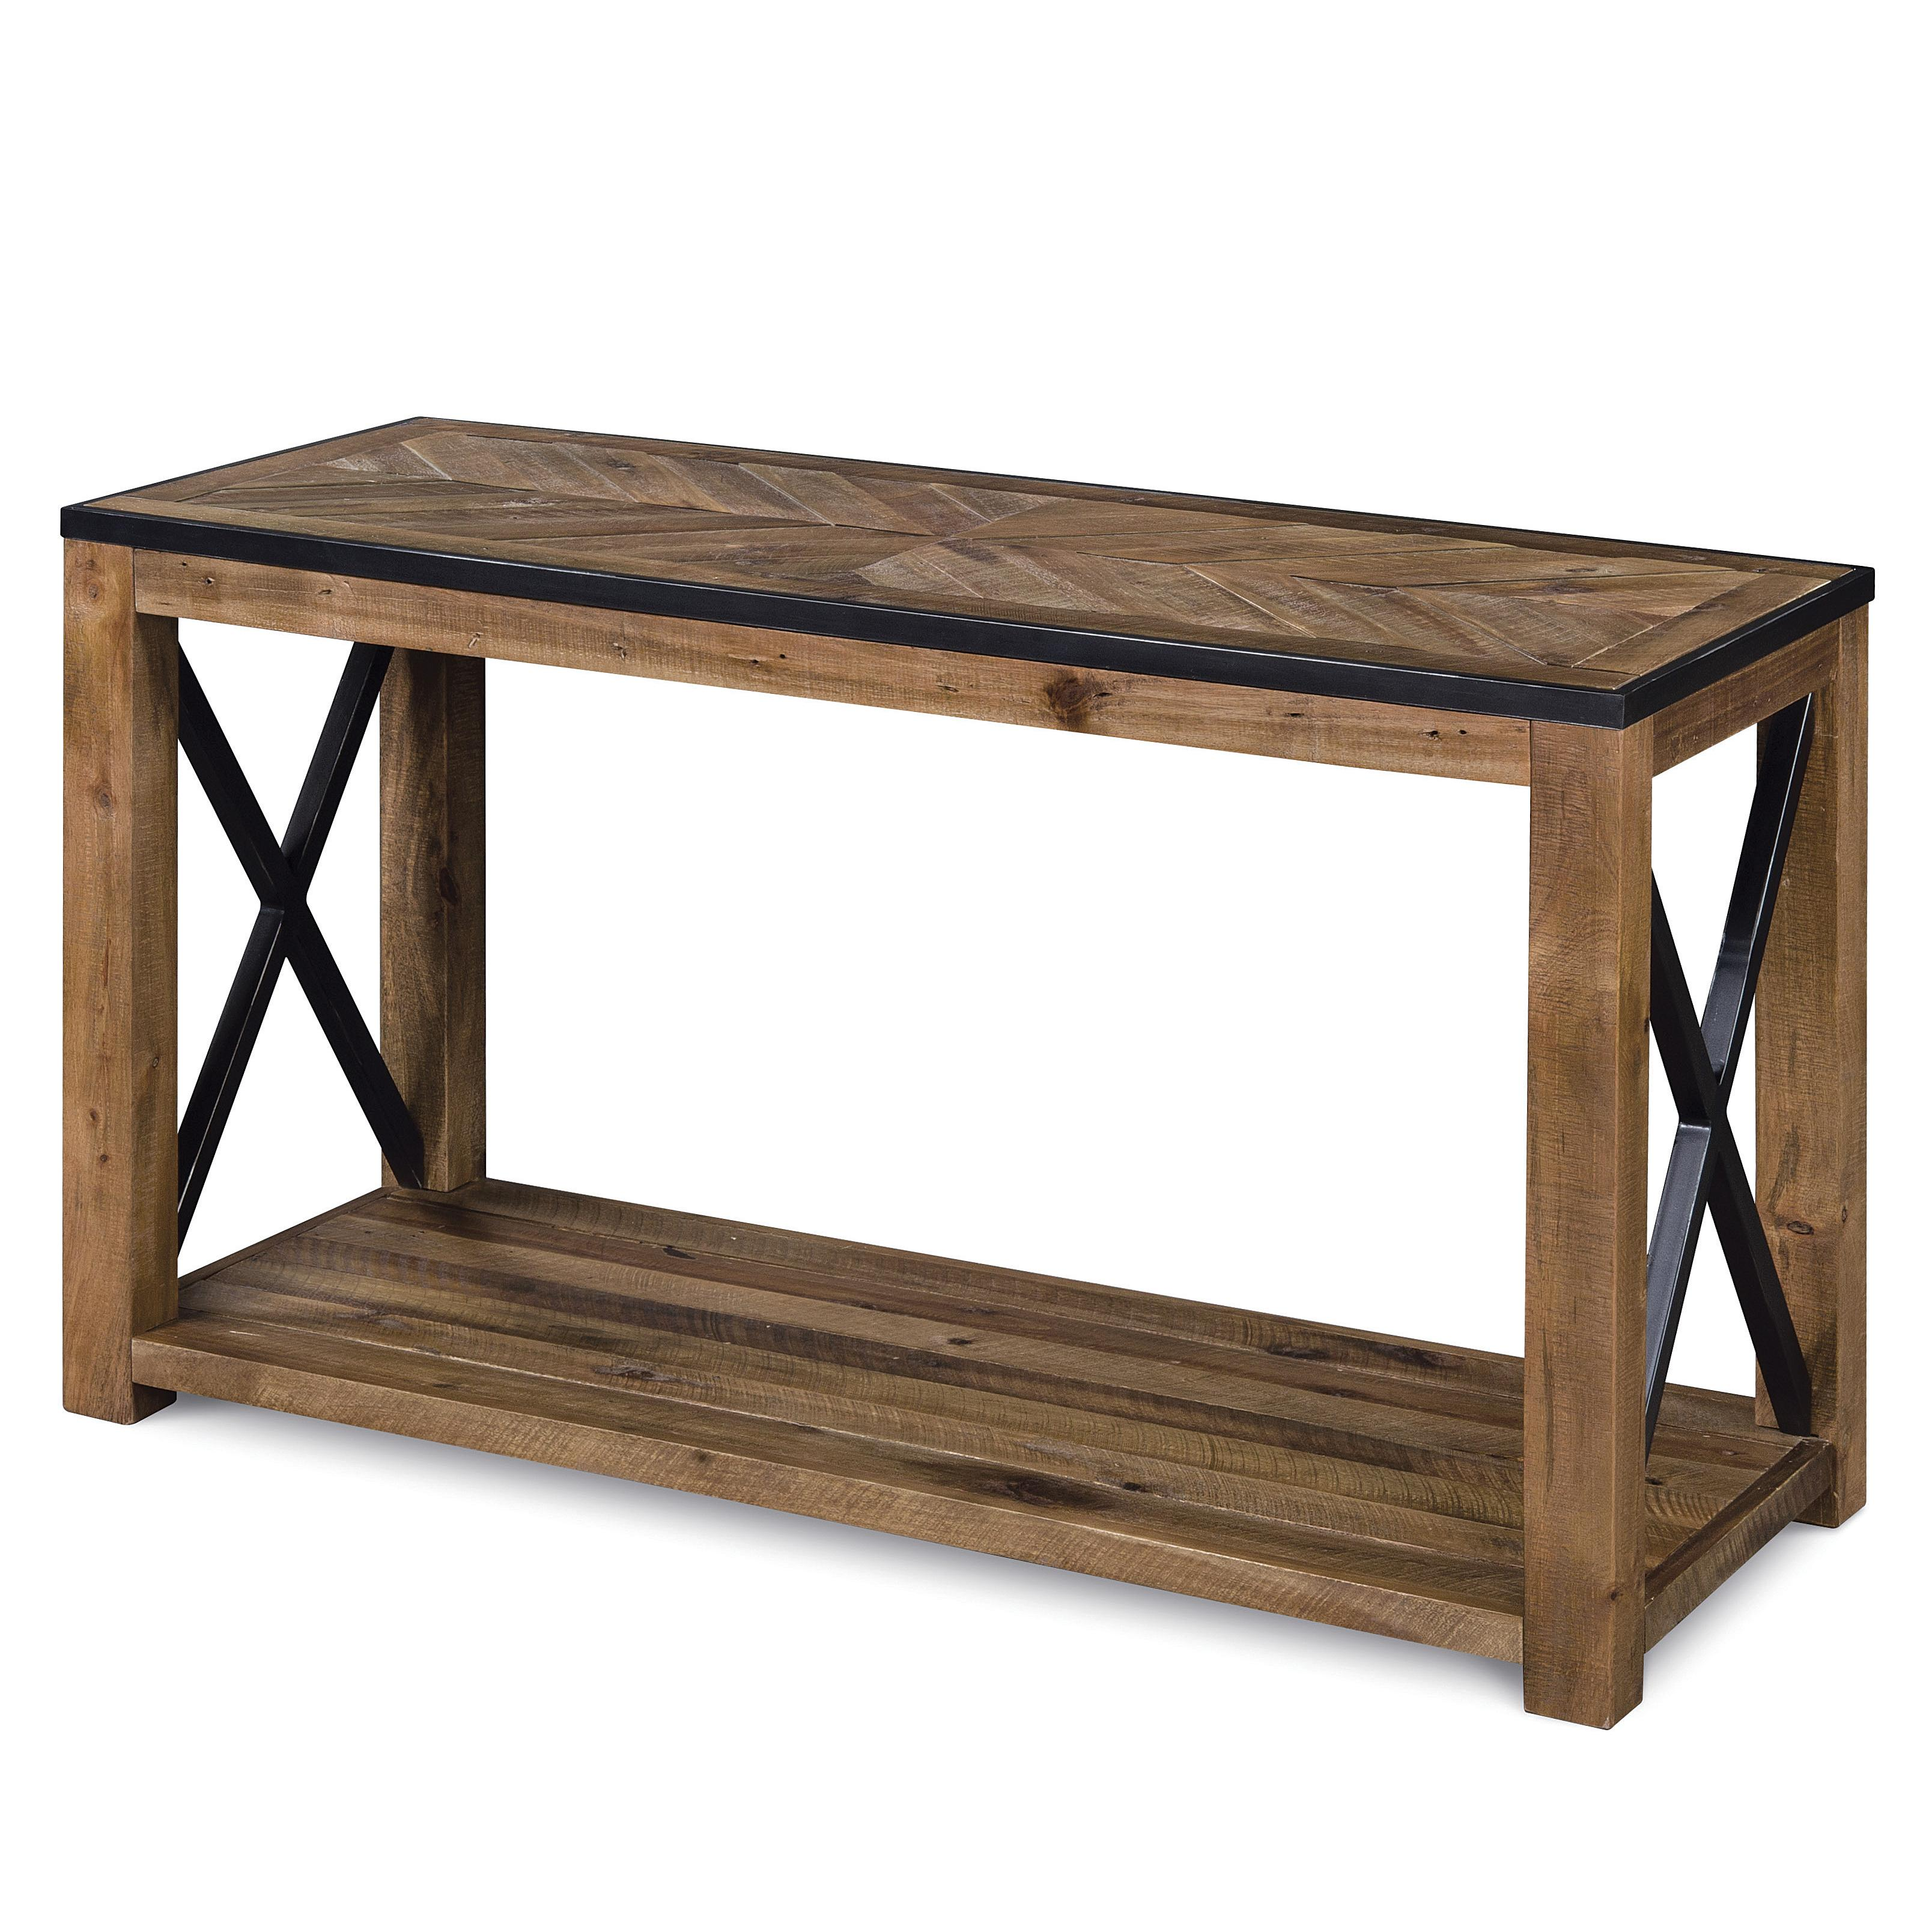 Rectangular sofa table with x cross stretchers by for Sofa table 50 inches